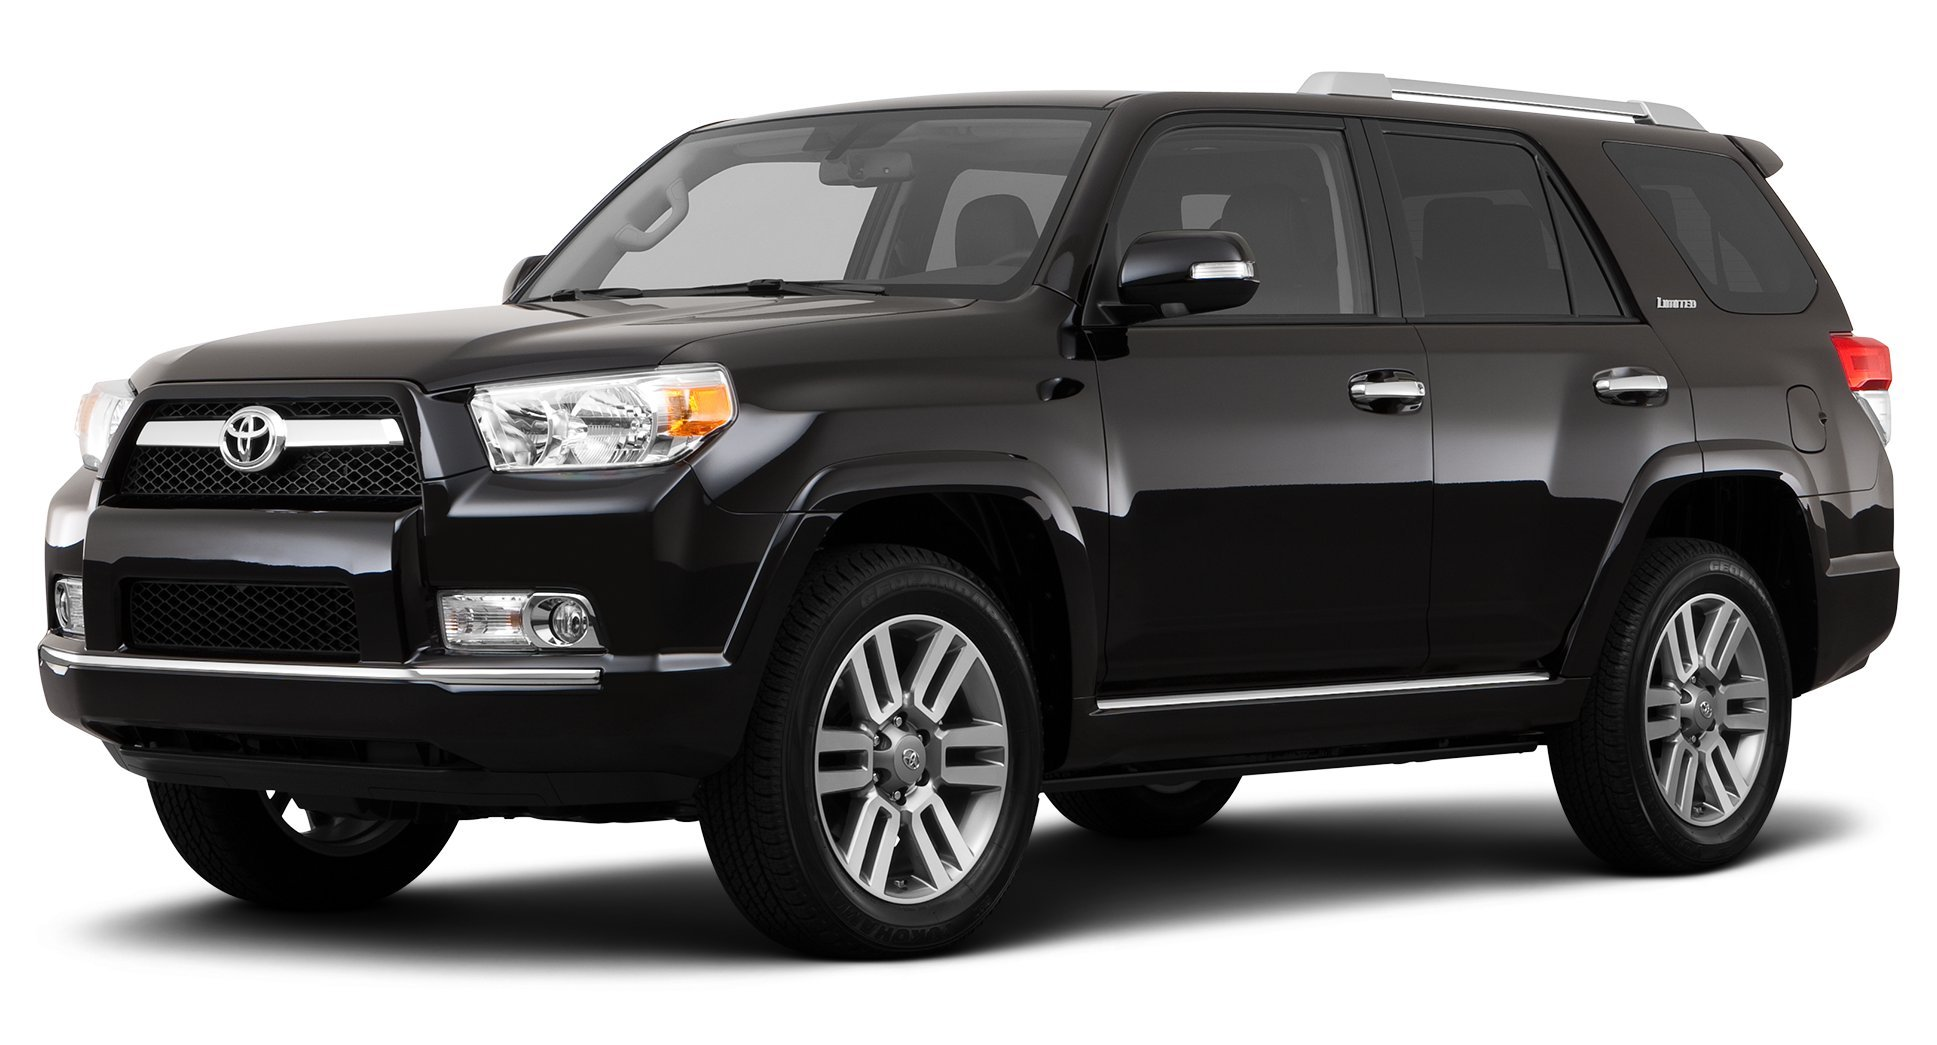 Amazon 2013 Toyota 4Runner Reviews and Specs Vehicles